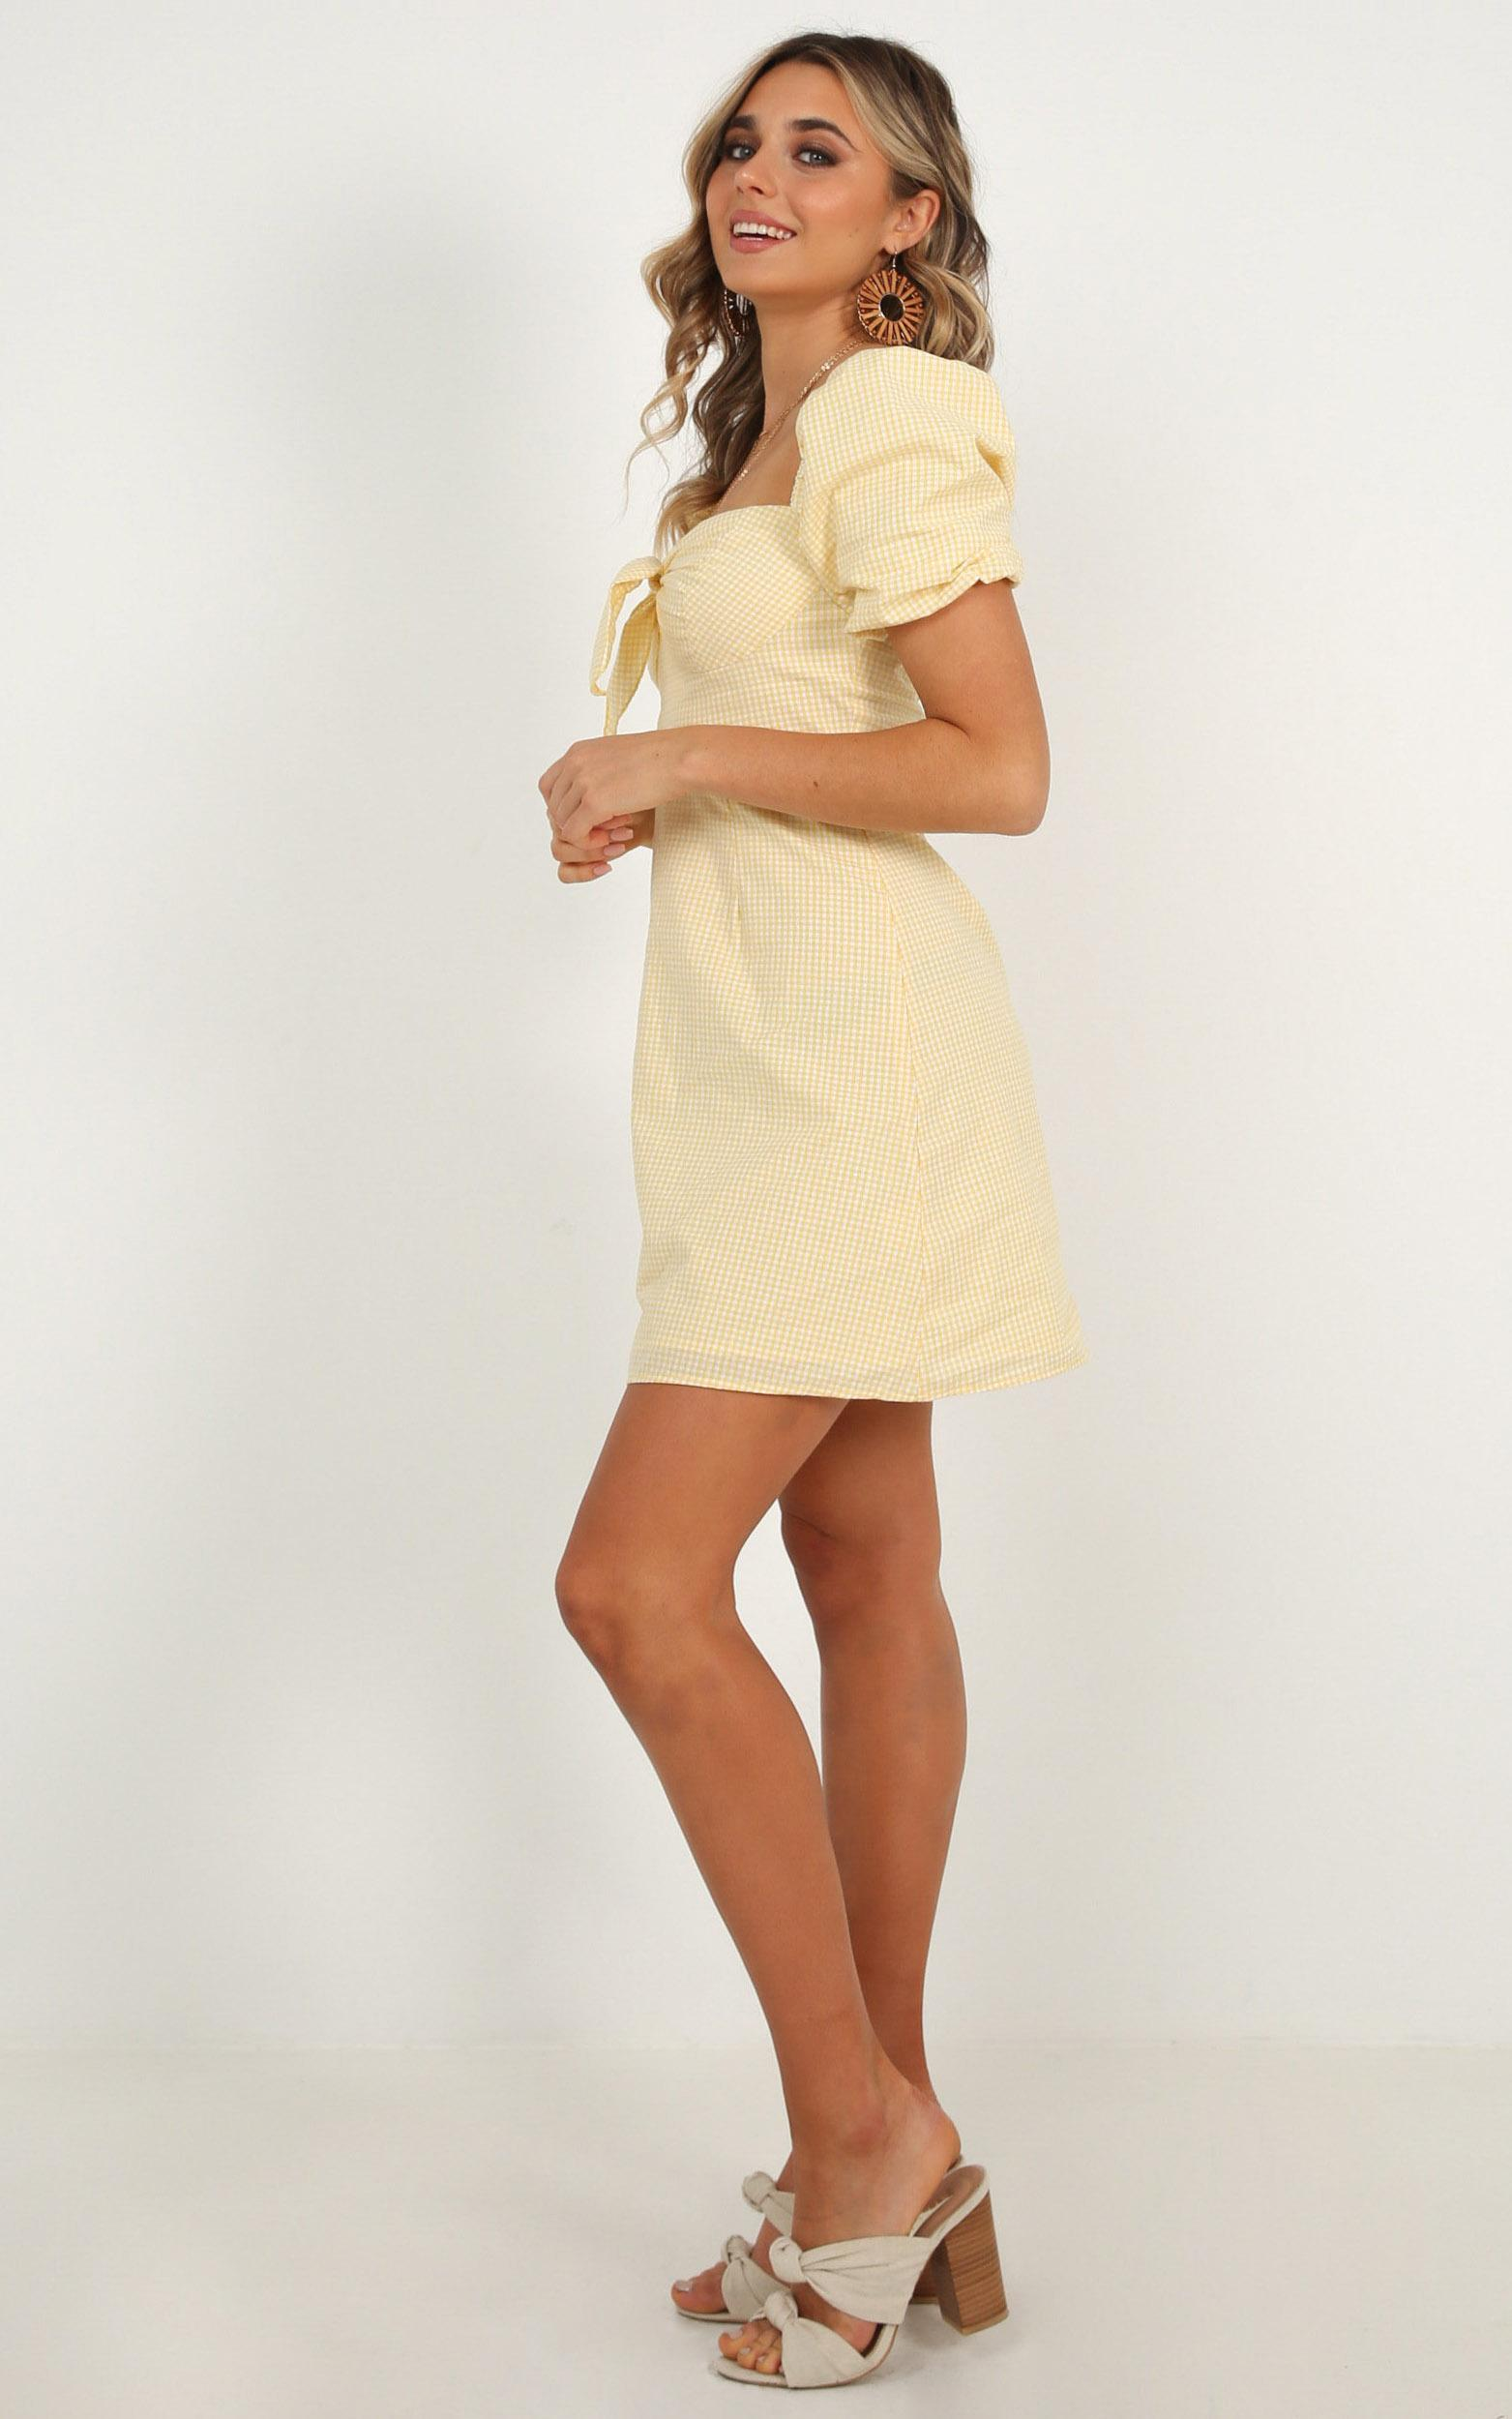 Destination  Love Dress in lemon - 20 (XXXXL), Yellow, hi-res image number null